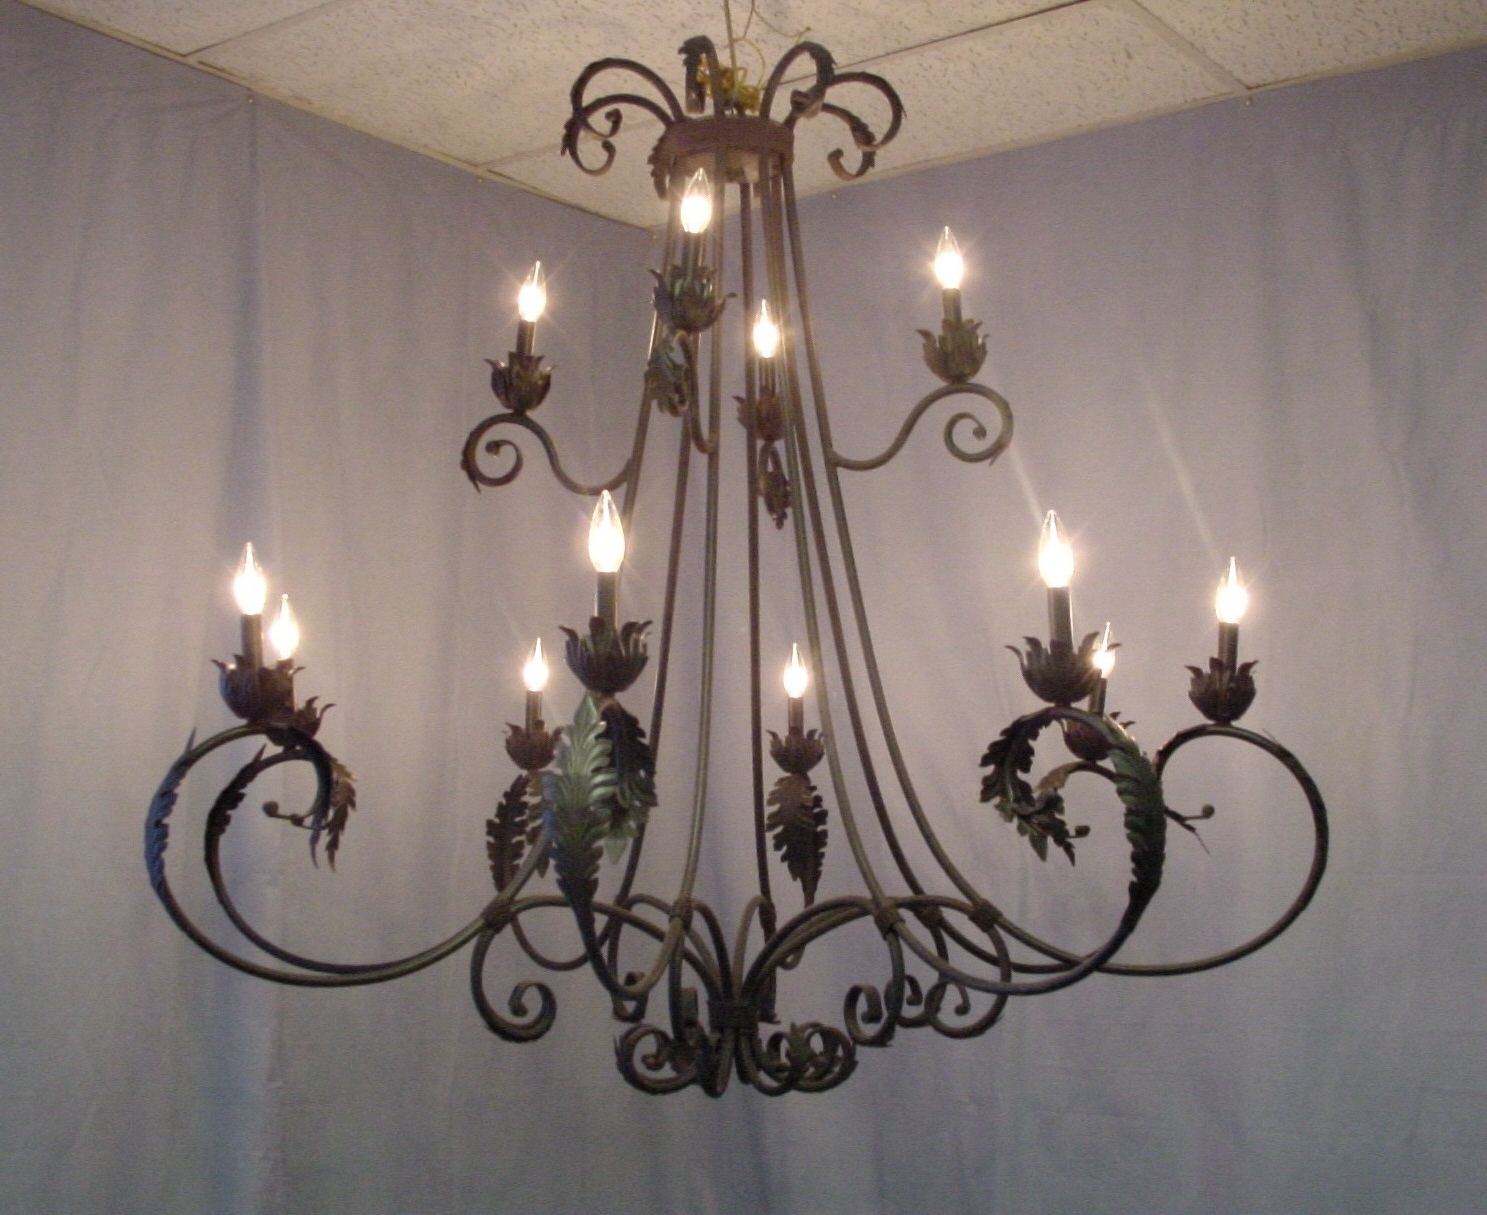 Wrought Iron Chandeliers With Crystal Accents : Lamp World Pertaining To Newest Wrought Iron Chandeliers (View 16 of 20)